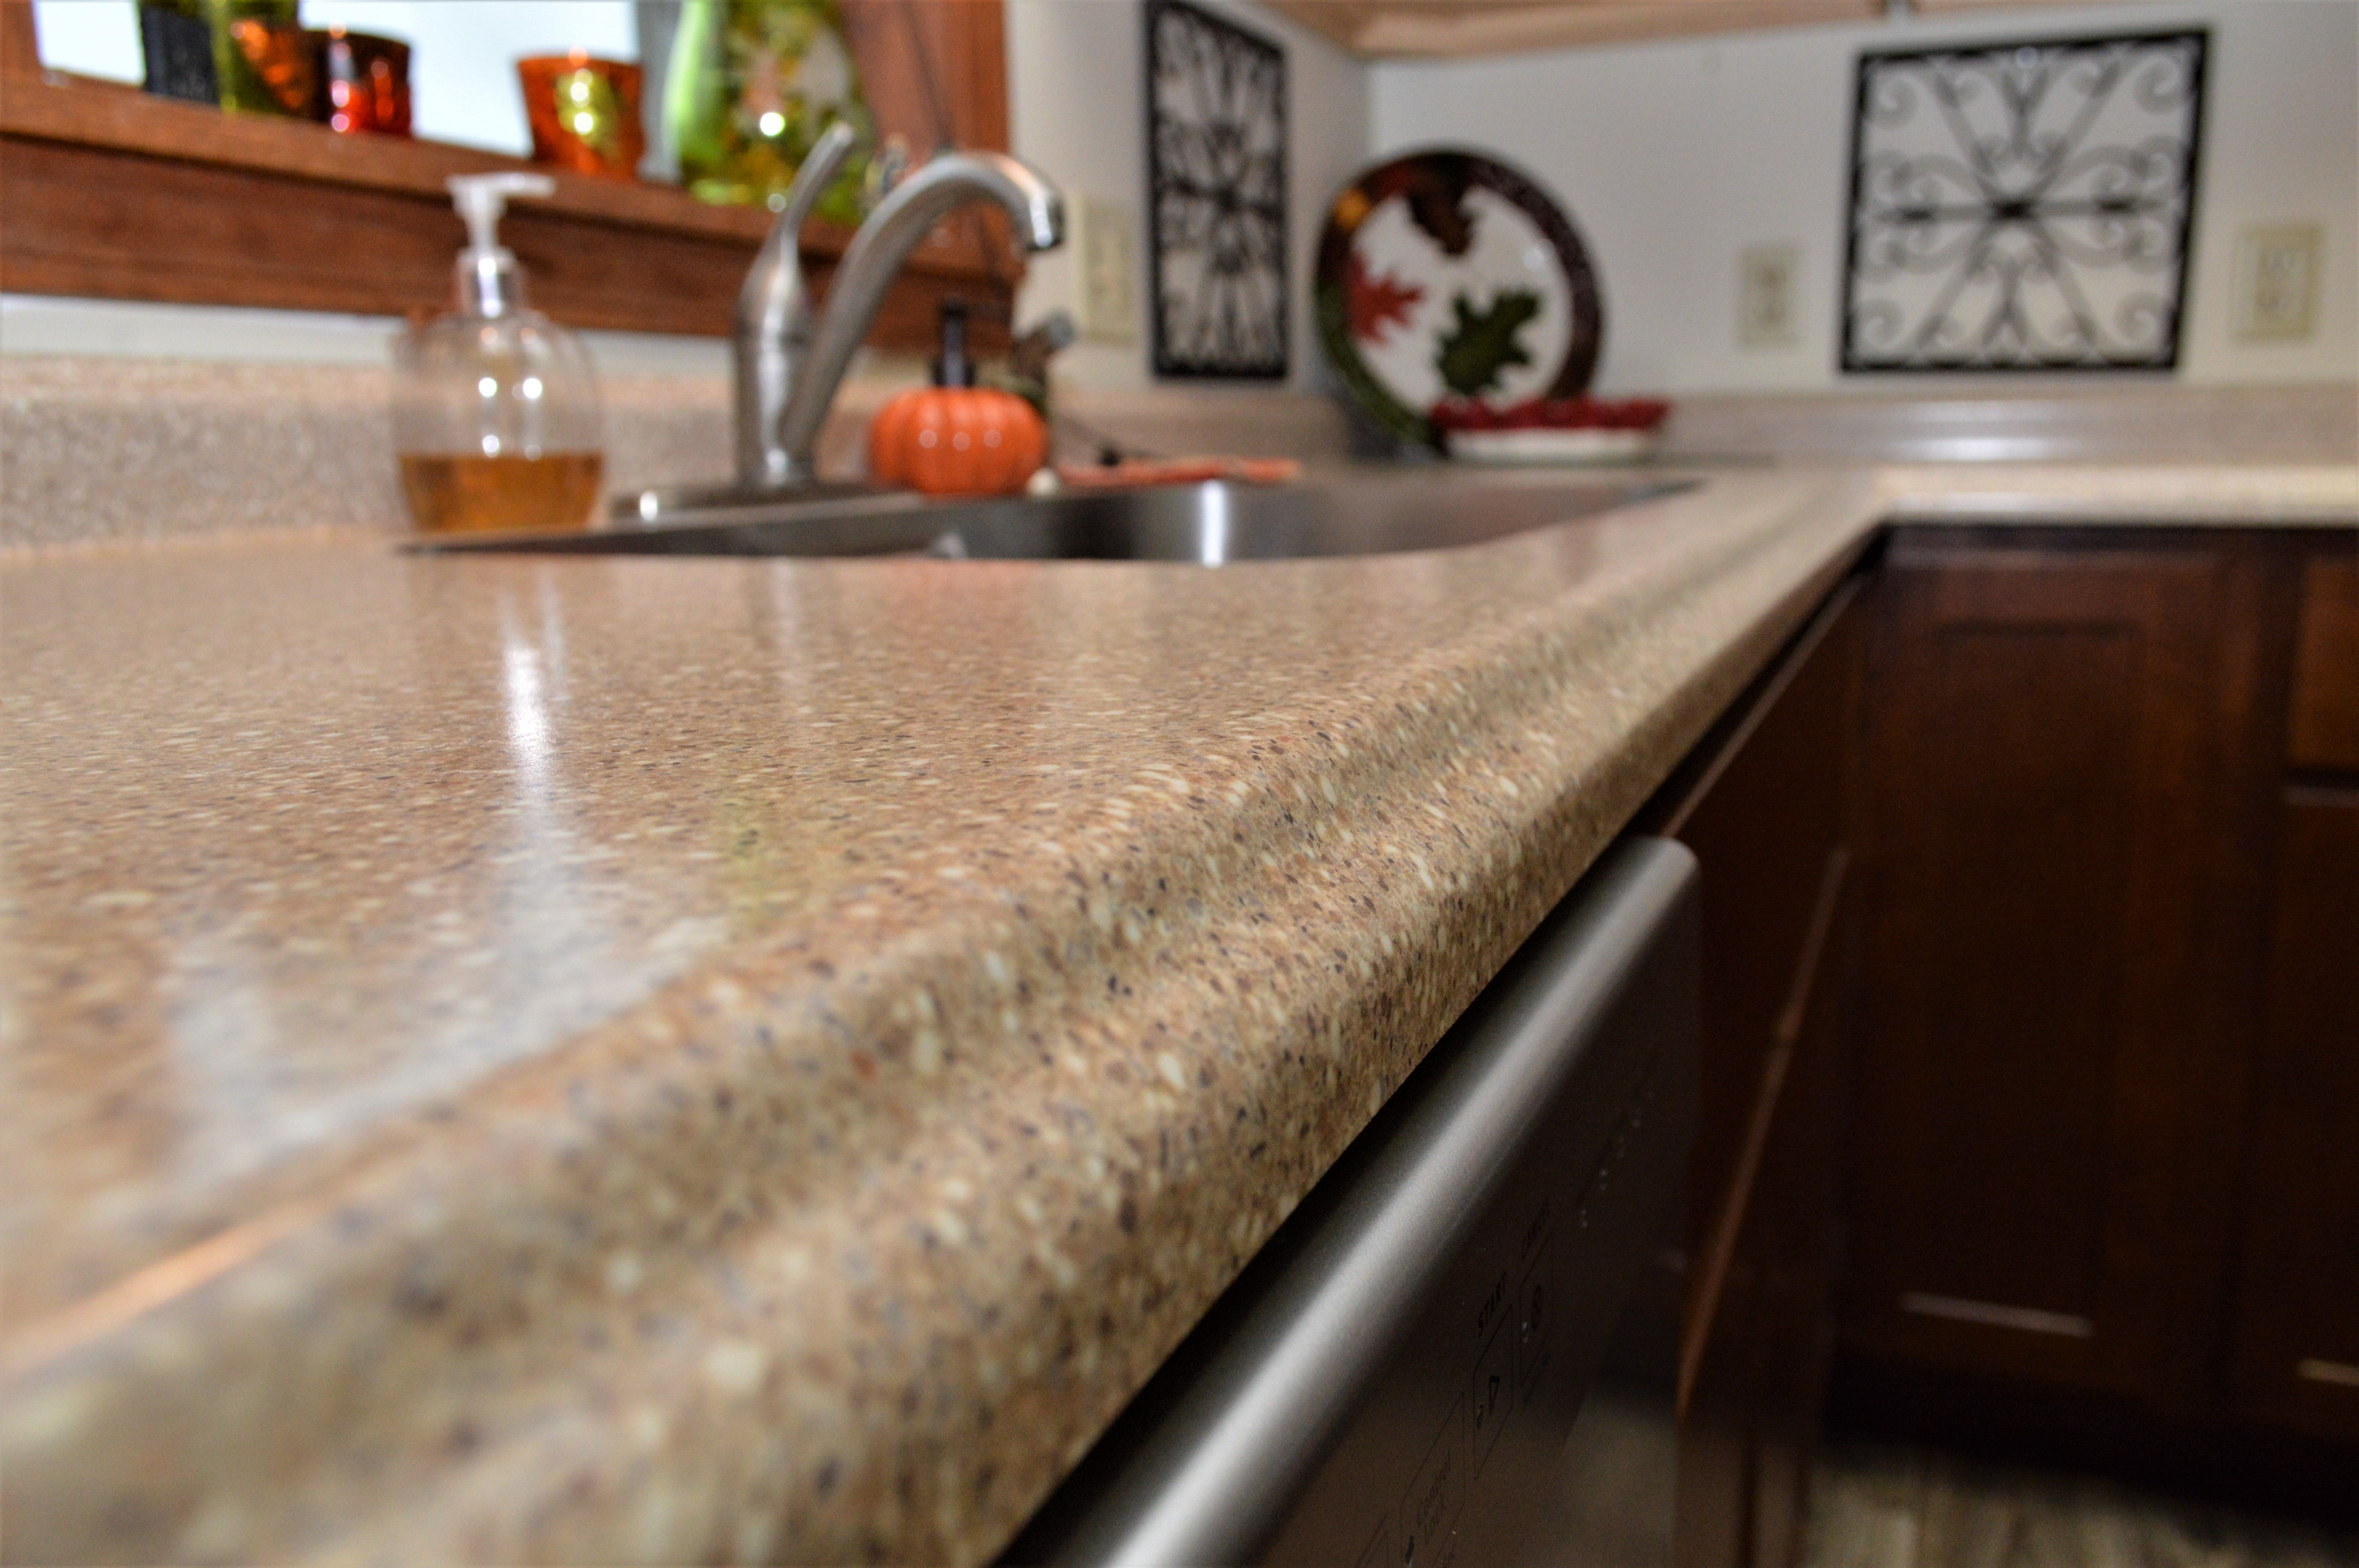 Laminate Countertop Vida Edge Detail Coved Backsplash Sand Crystal Color Laminate Countertops Countertops Kitchen